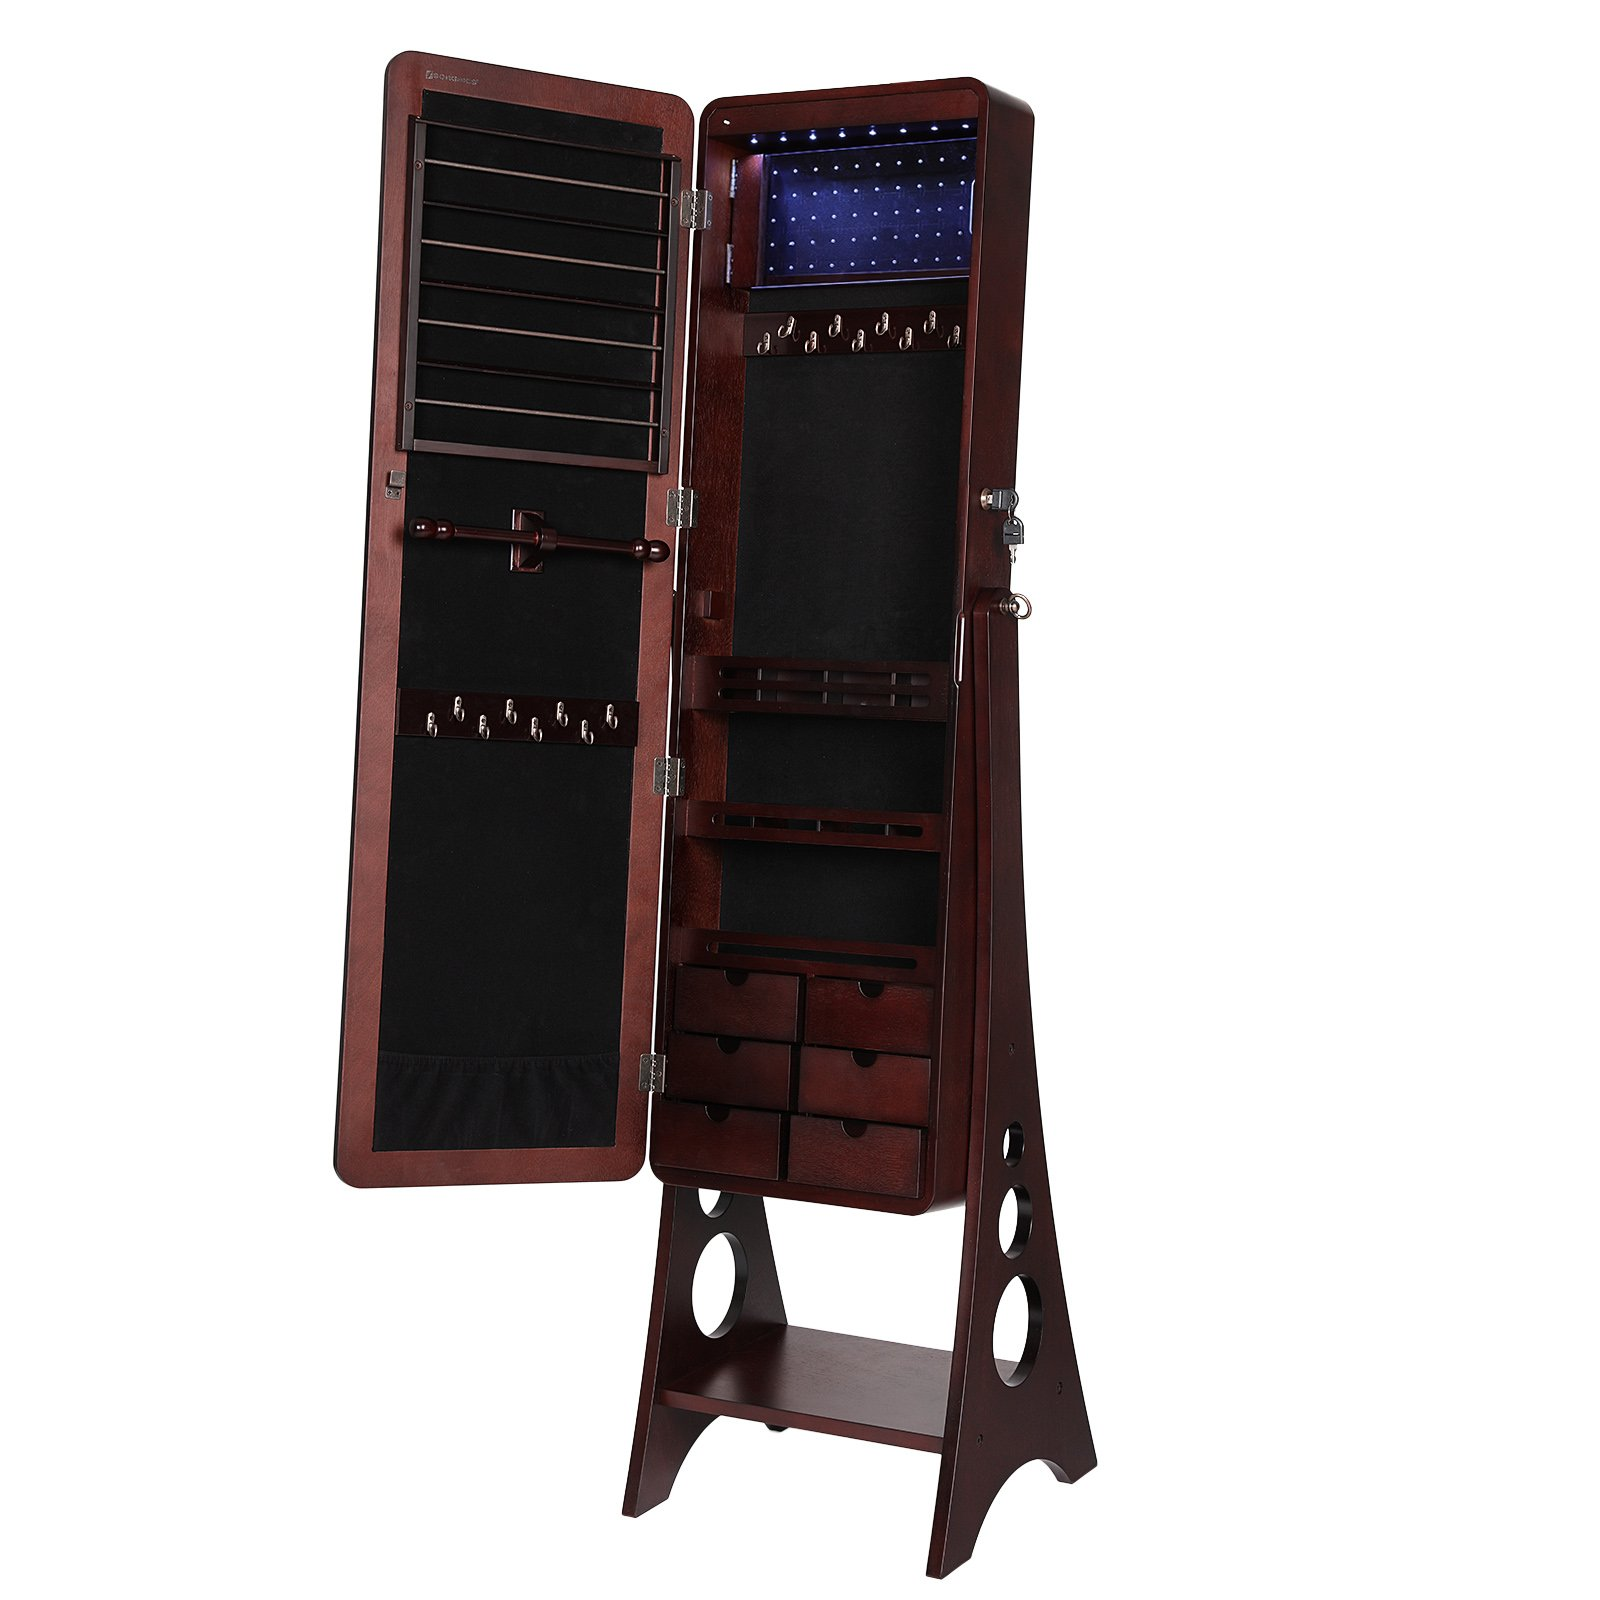 SONGMICS 8 LEDs Jewelry Cabinet Armoire with Beveled Edge Mirror, Gorgeous Jewelry Organizer Large Capacity Brown Patented UJJC89K by SONGMICS (Image #9)